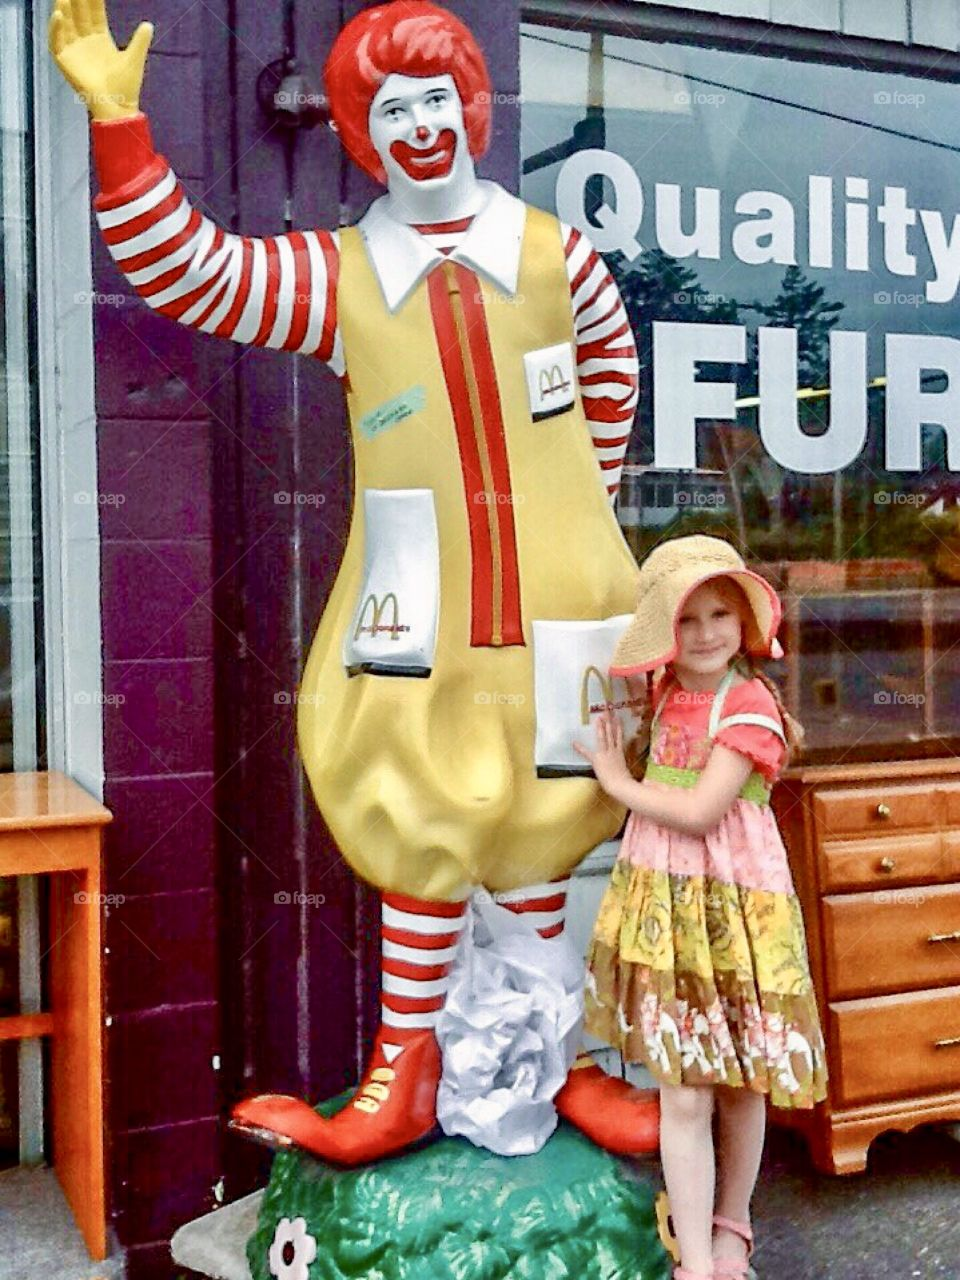 Retro Ronald McDonald statue for sale at second-hand store